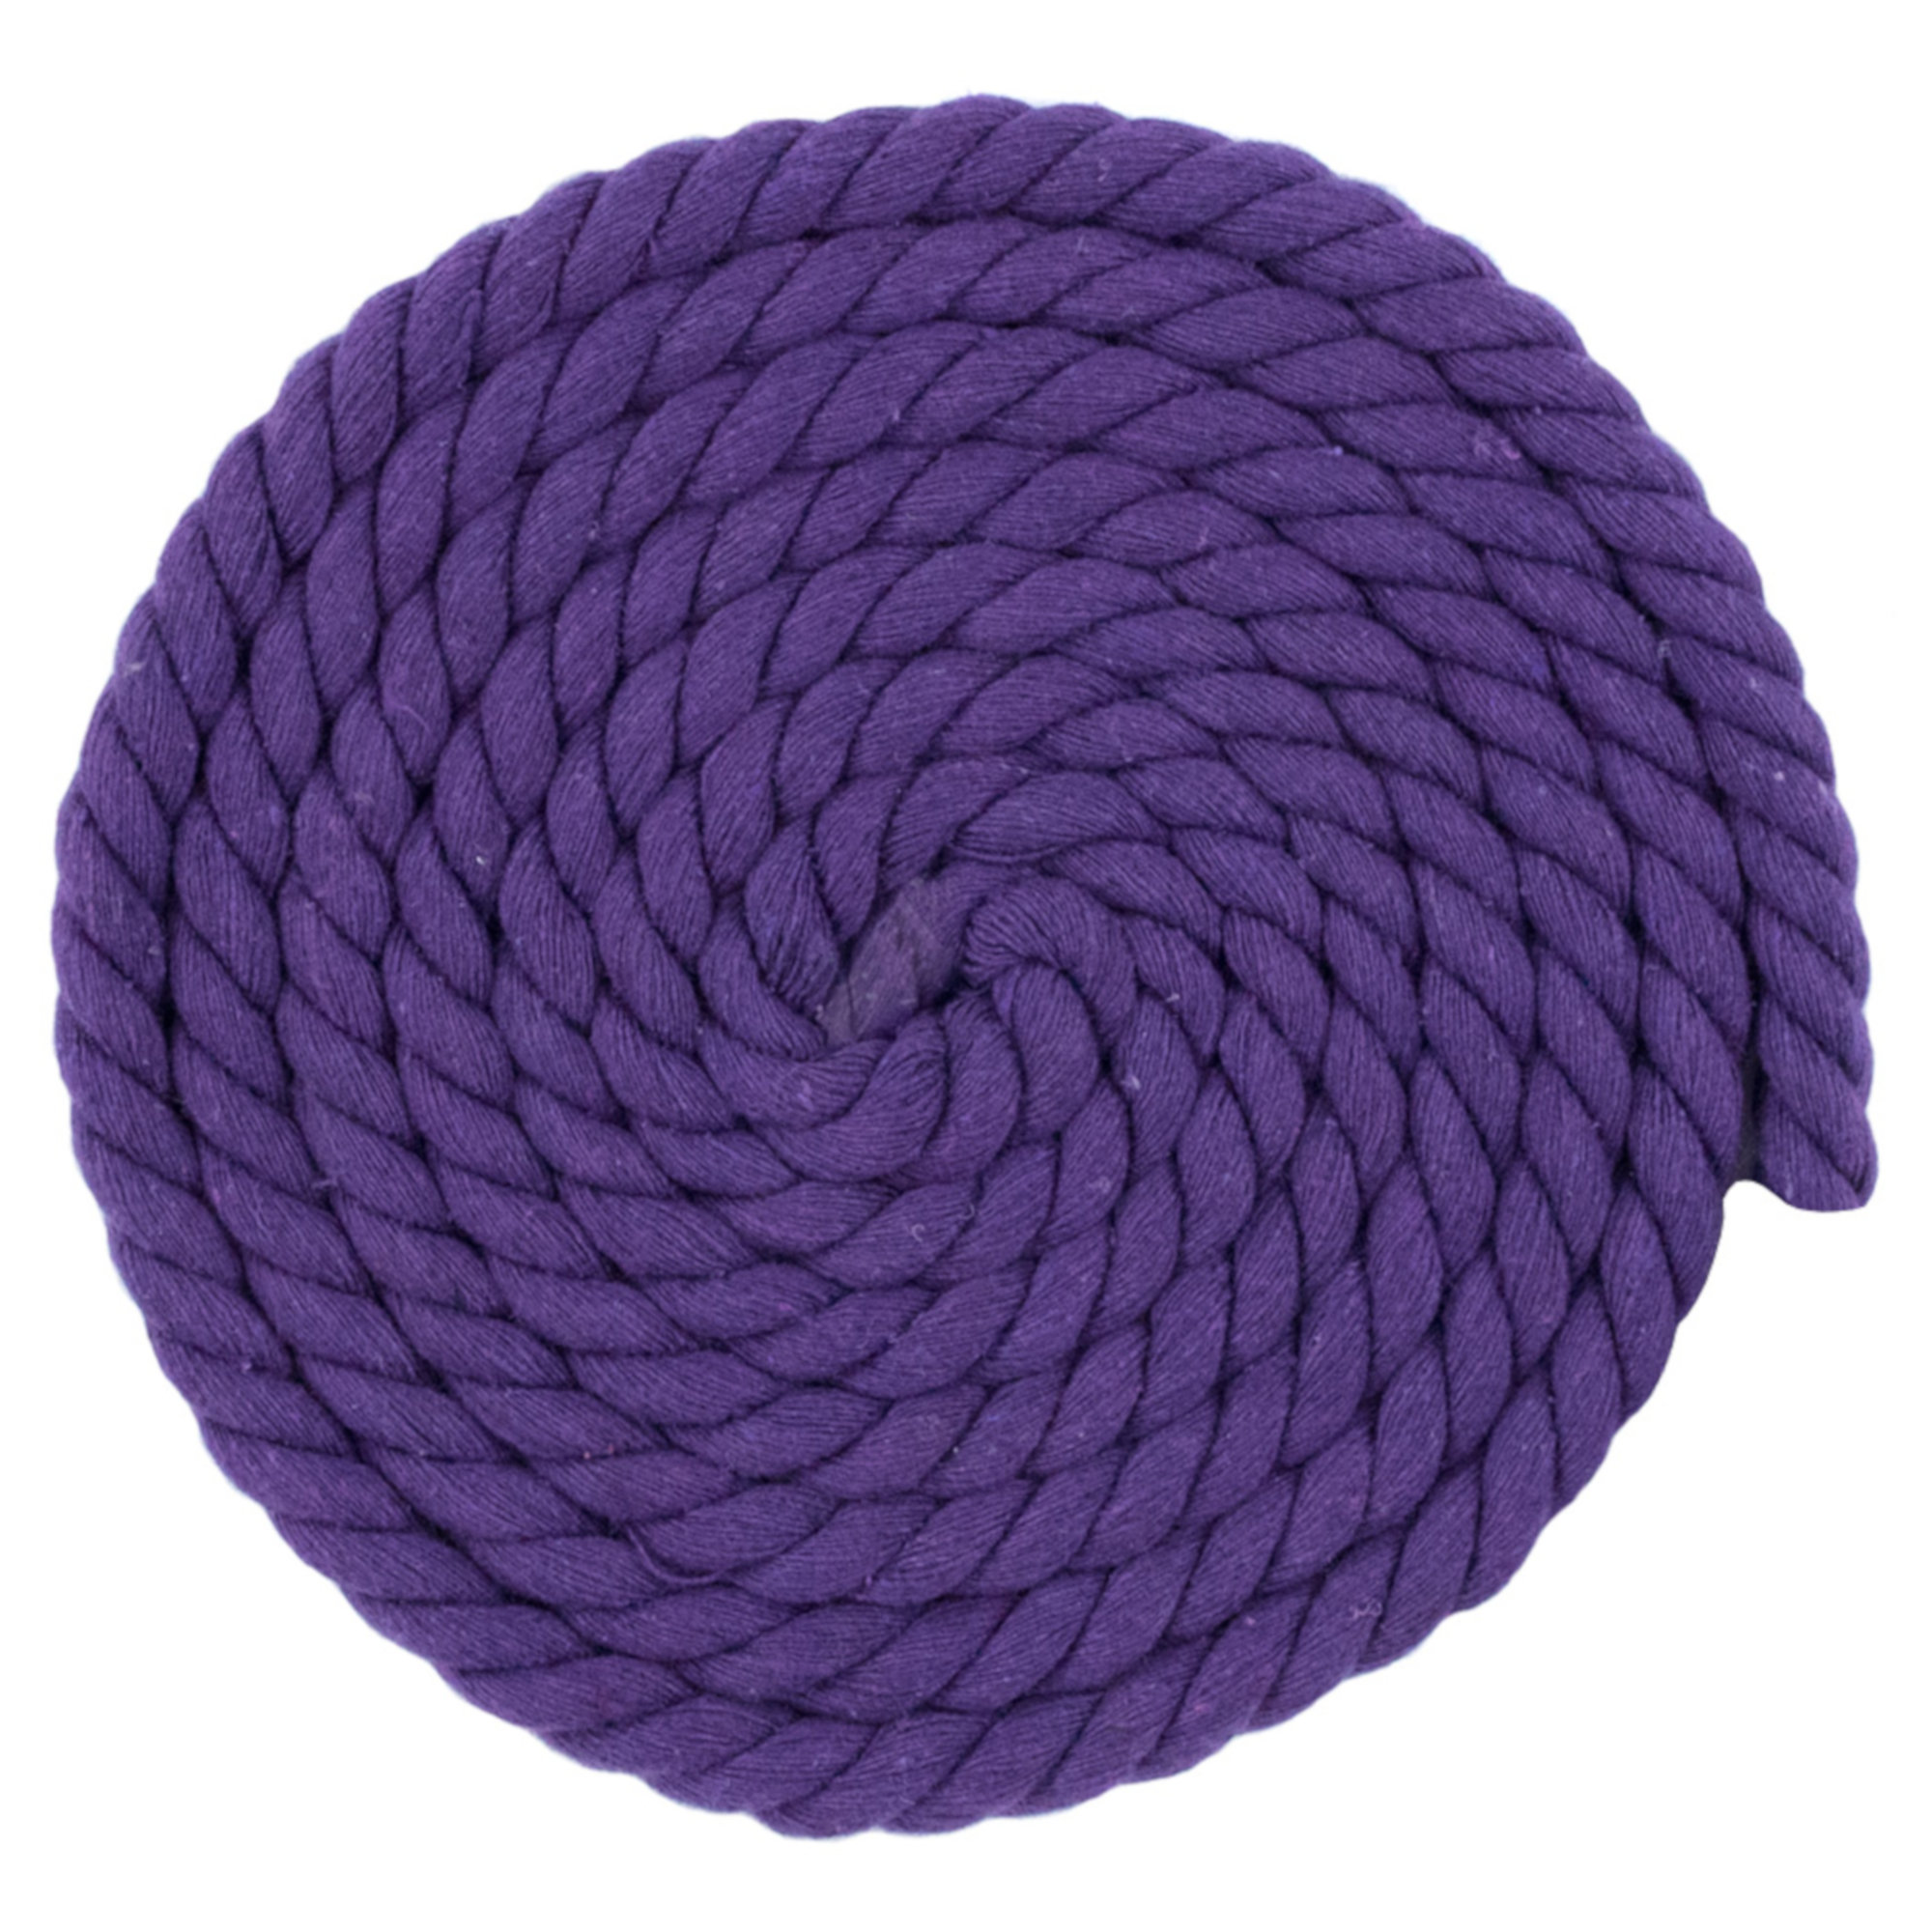 32 Feet//10 m 8mm Diameter Thick Colored Rope Natural Utility Durable Long Twisted Braided Cord Plastic End Reinforced Soft Cotton Rope Multifunction Craft Rope 2 Pcs 1//3 inch Purple